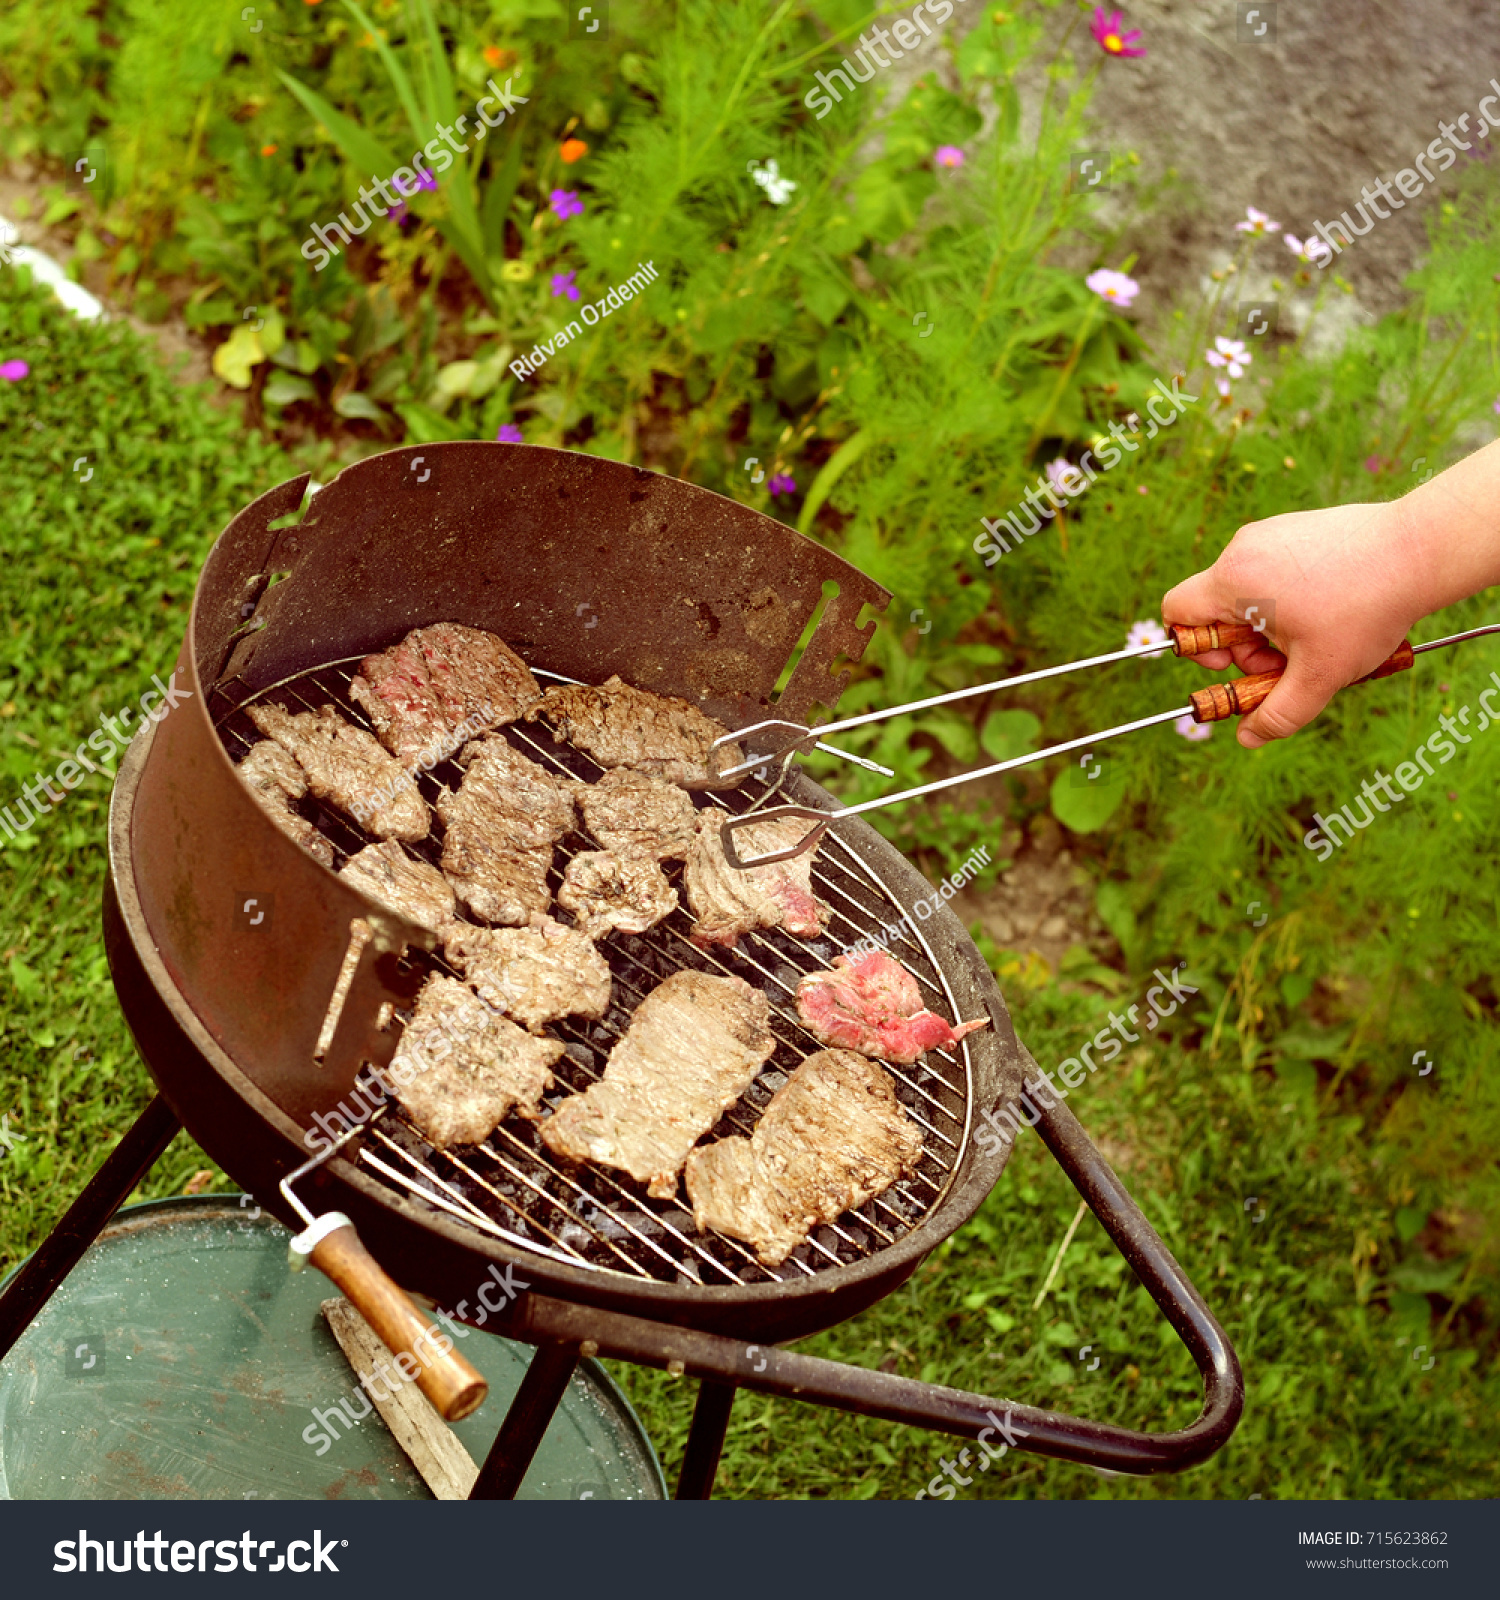 Beef Steak On Barbecue Grill Garden Stock Photo (Download Now ...